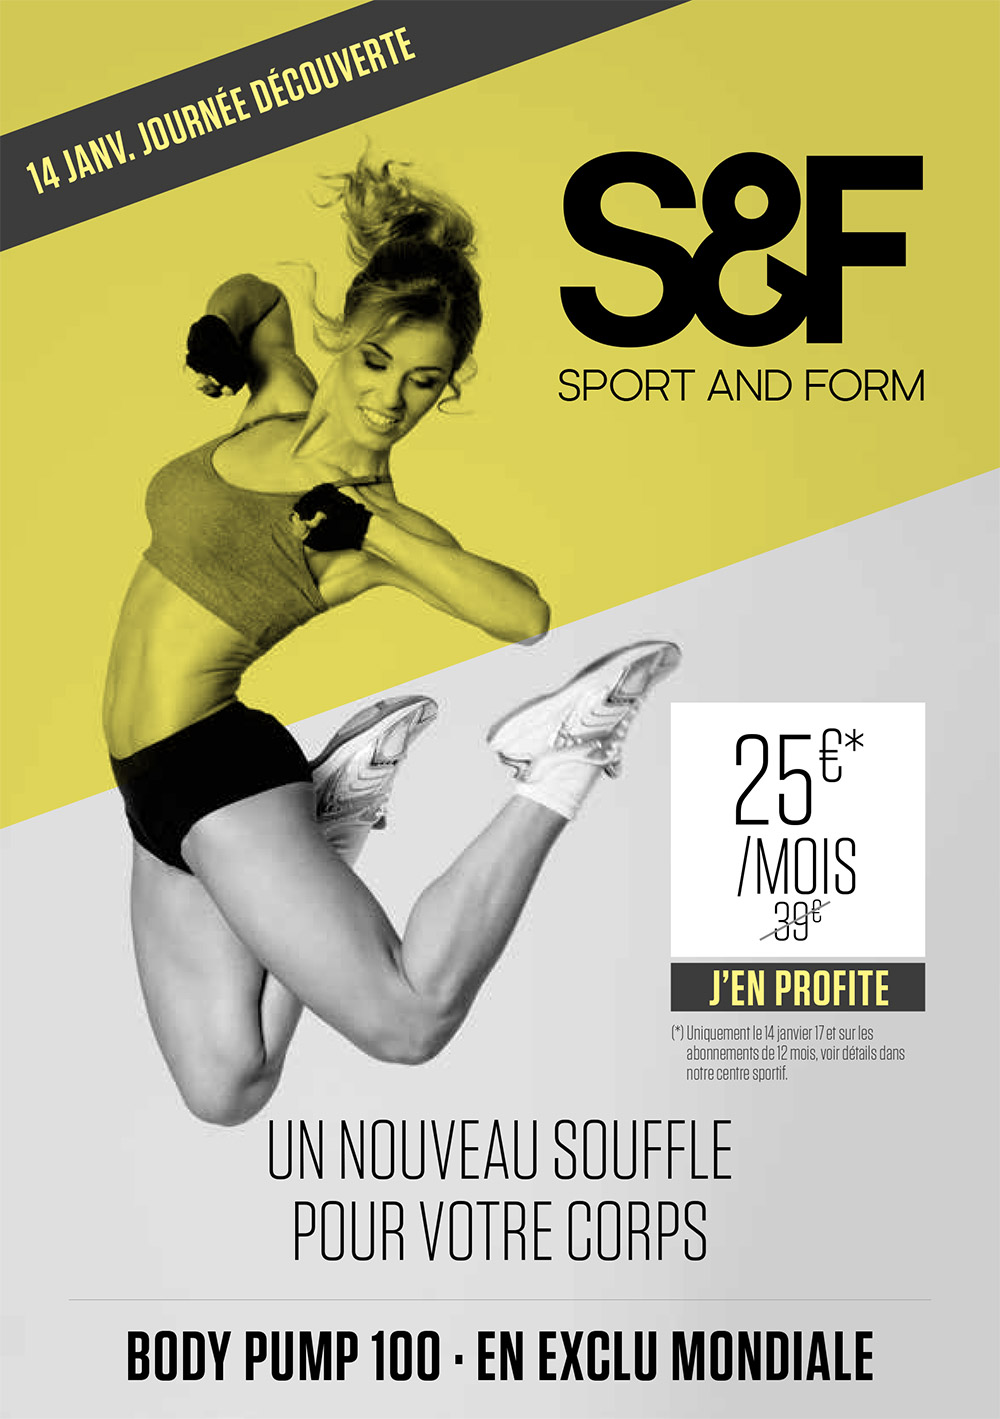 Journée découverte à Sport and Form, Fitness Club de Gaillac / © DR